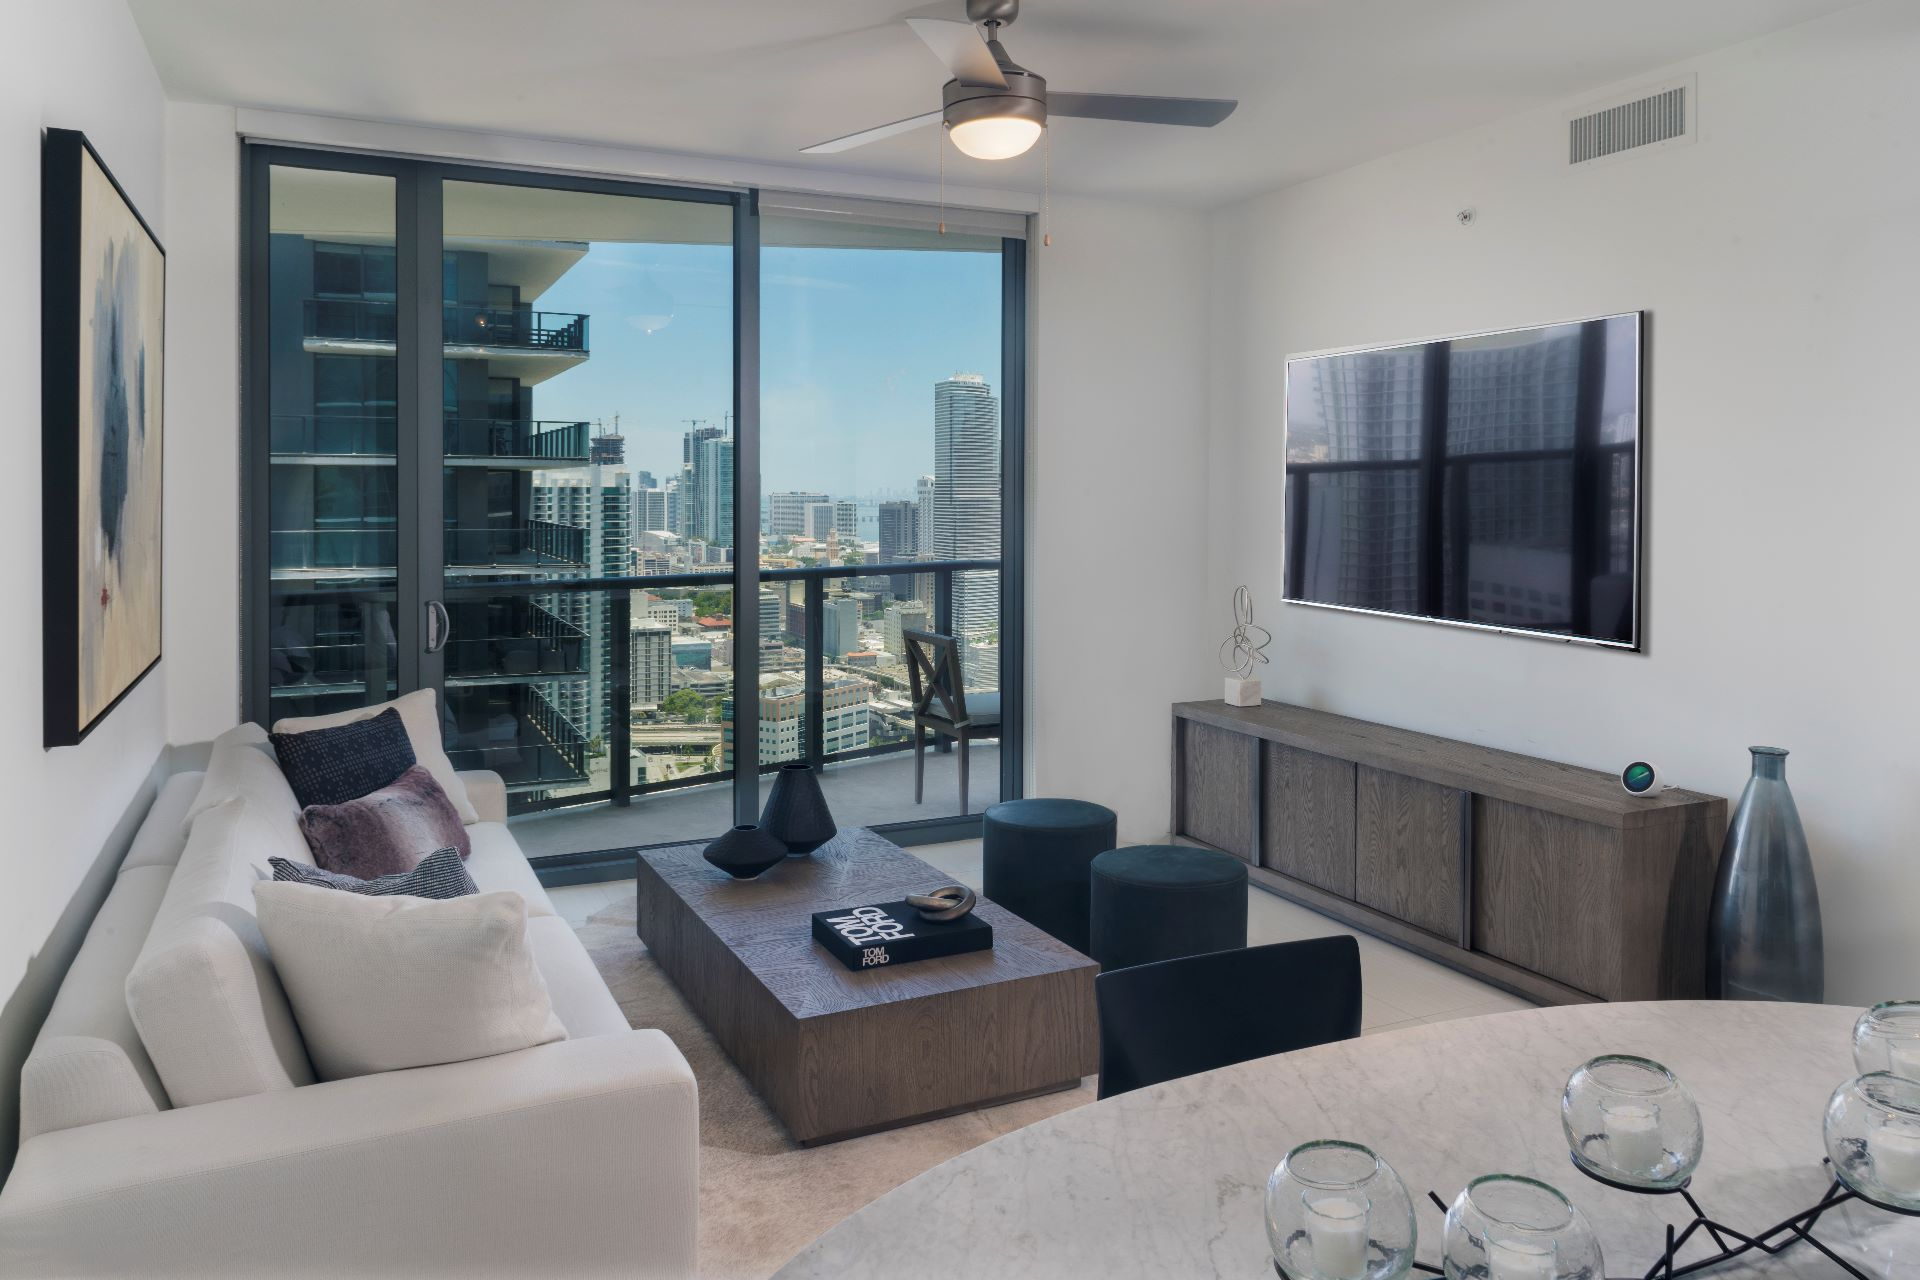 Apartment living room with balcony view of downtown